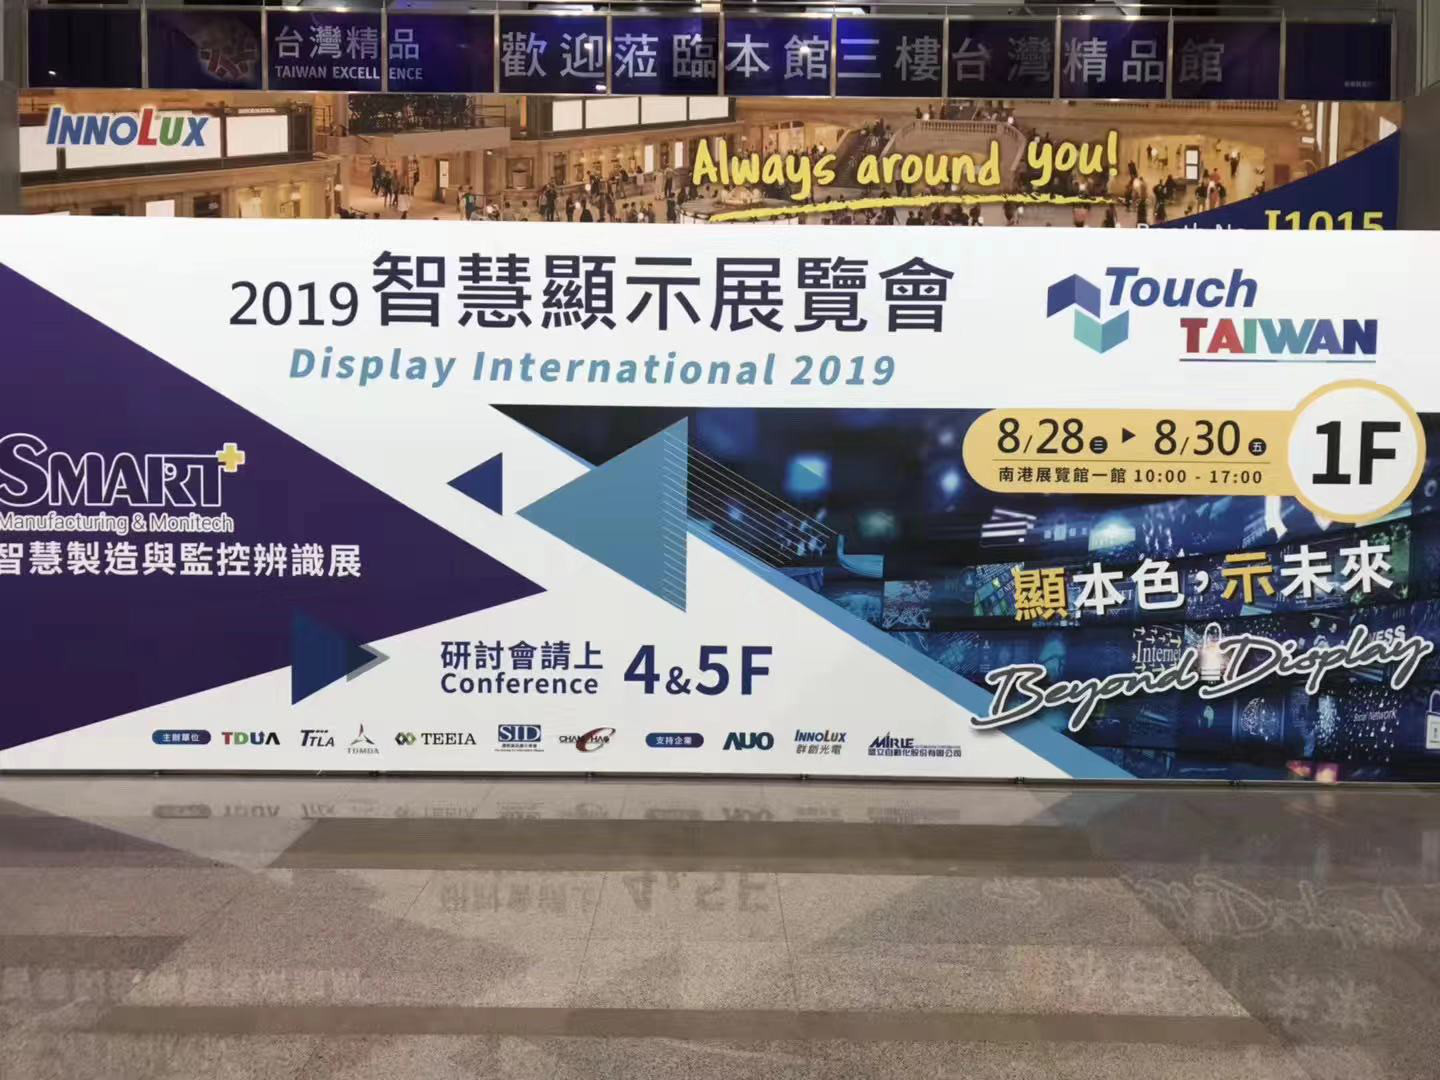 China últimas noticias sobre International asistido Uno-tacto 2019 de la exhibición de Taiwán